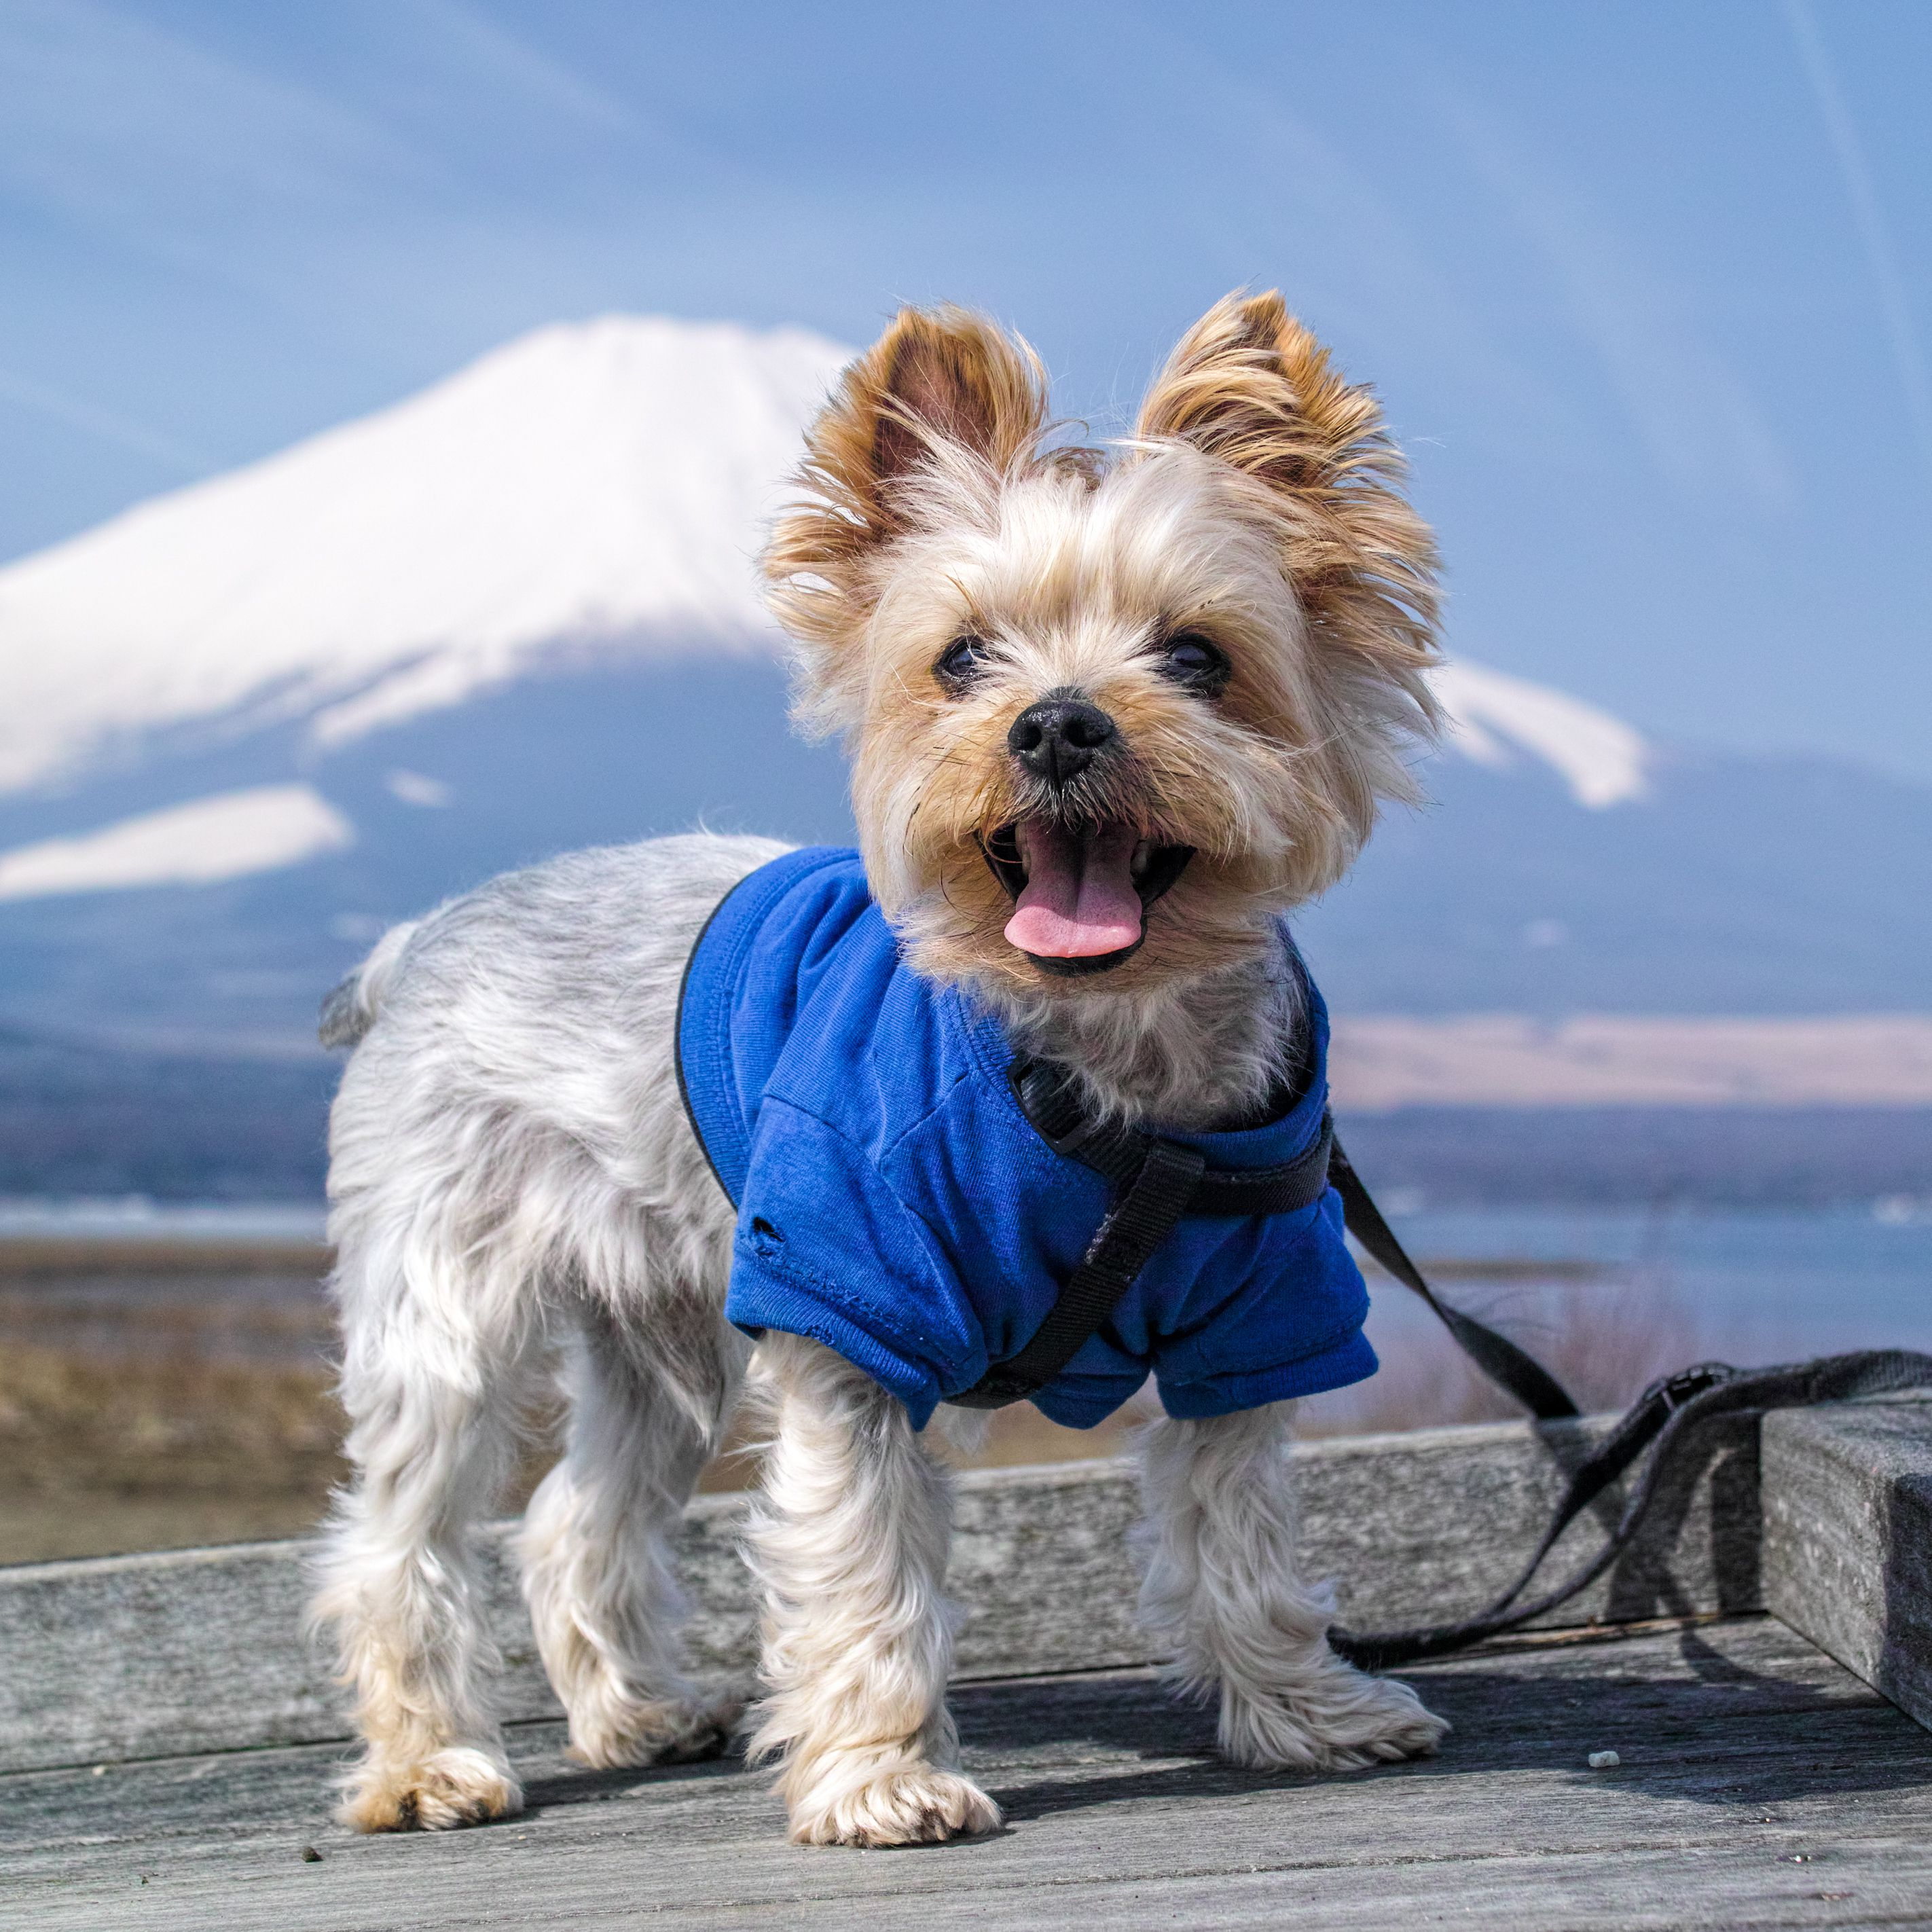 It's dog coat season, y'all! How To Start A Pet Apparel Design Business